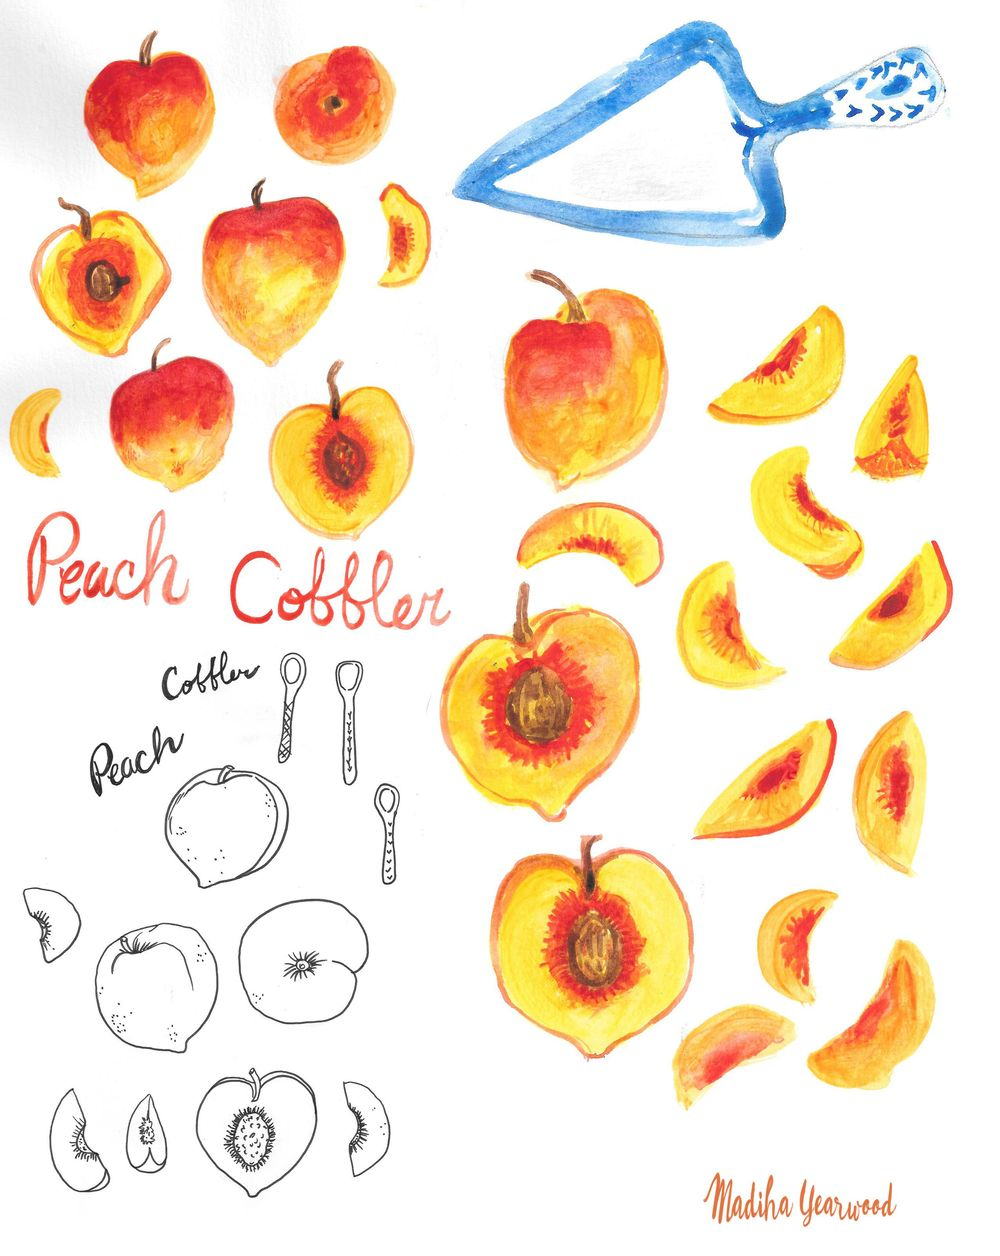 Yummy Peach Cobbler! - image 2 - student project